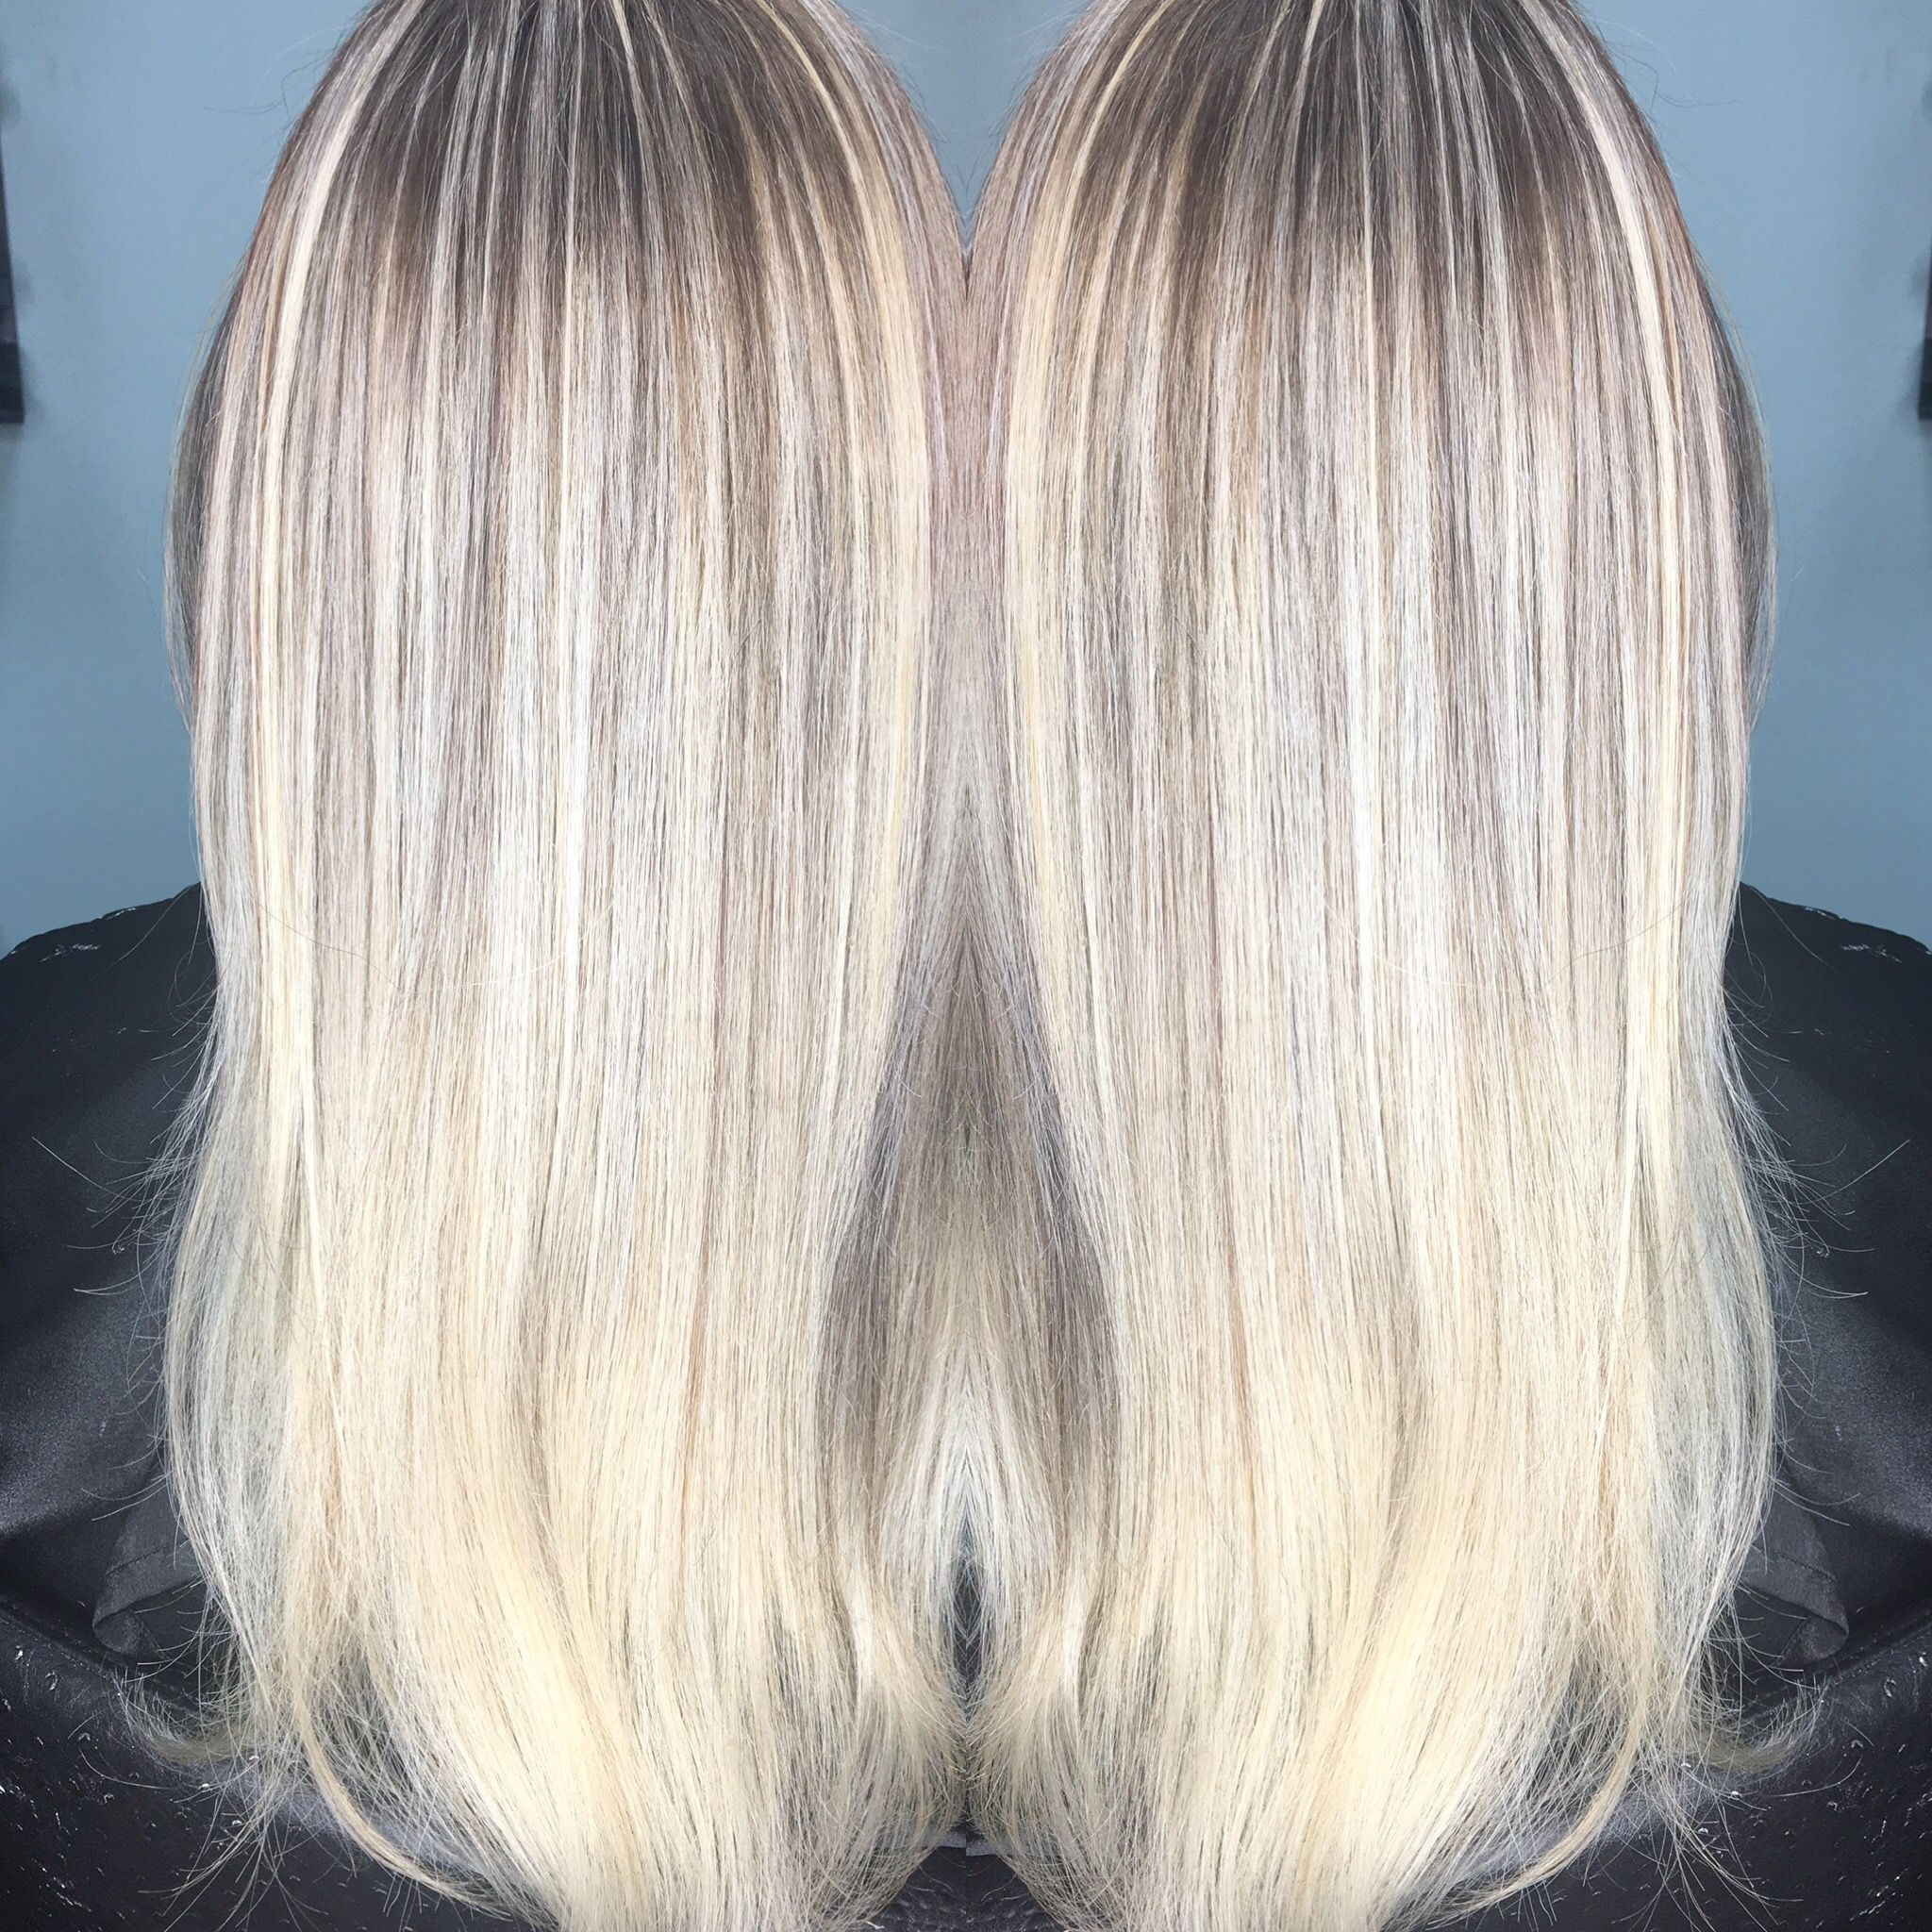 Icey Blonde Using Keune Cream Bleach 30 Vol In Foils For 10 Mins Then Added Keune Semi Color 8 17 Double Semi Activa Foil Hair Color Hair Color Icey Blonde